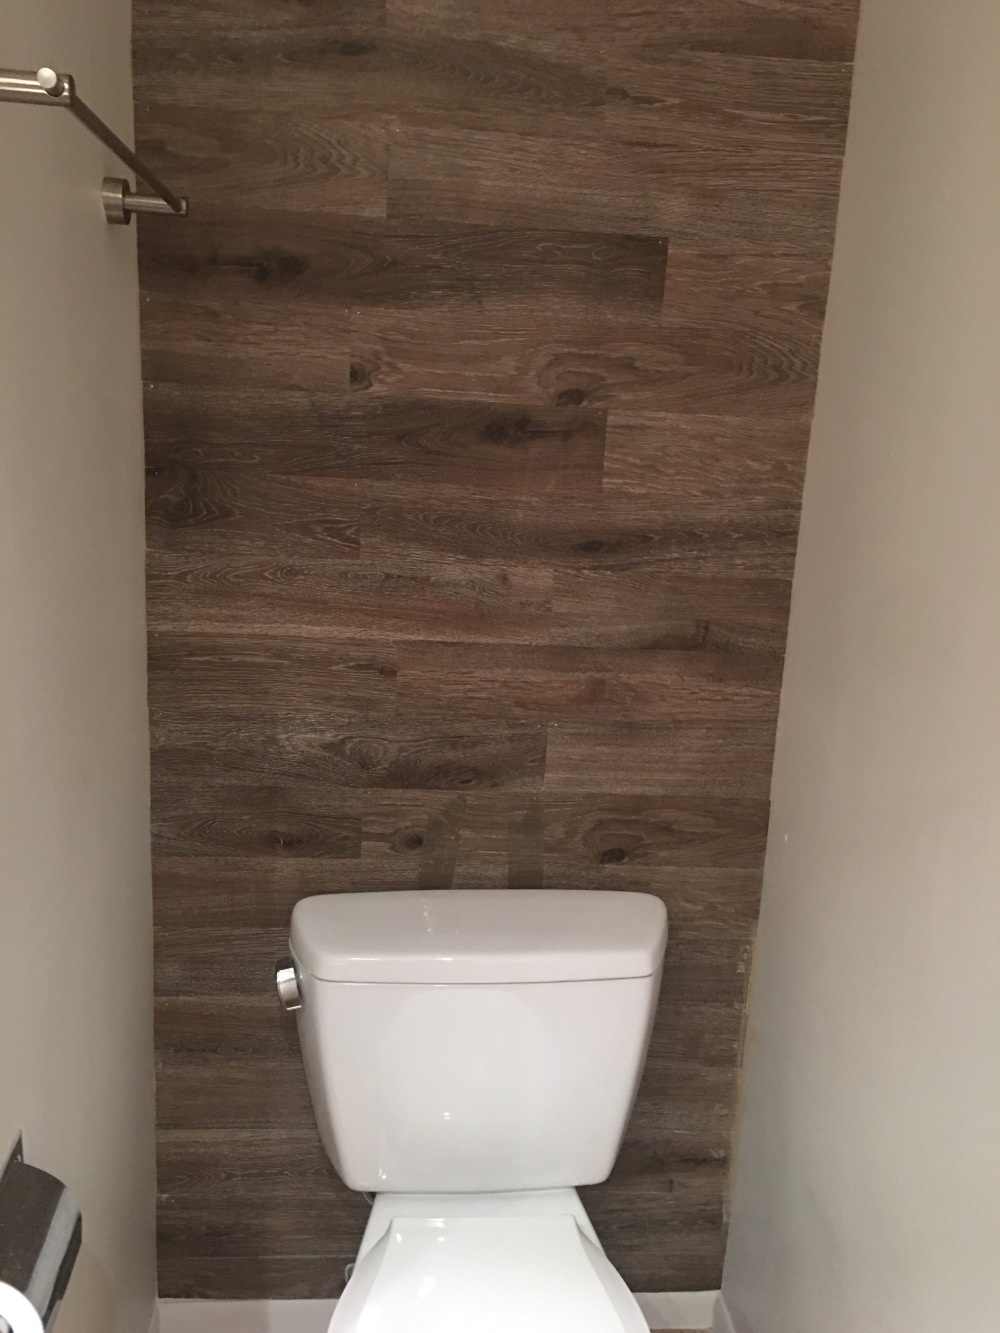 How I installed a vinyl wood accent wall in my bathroom for under ...